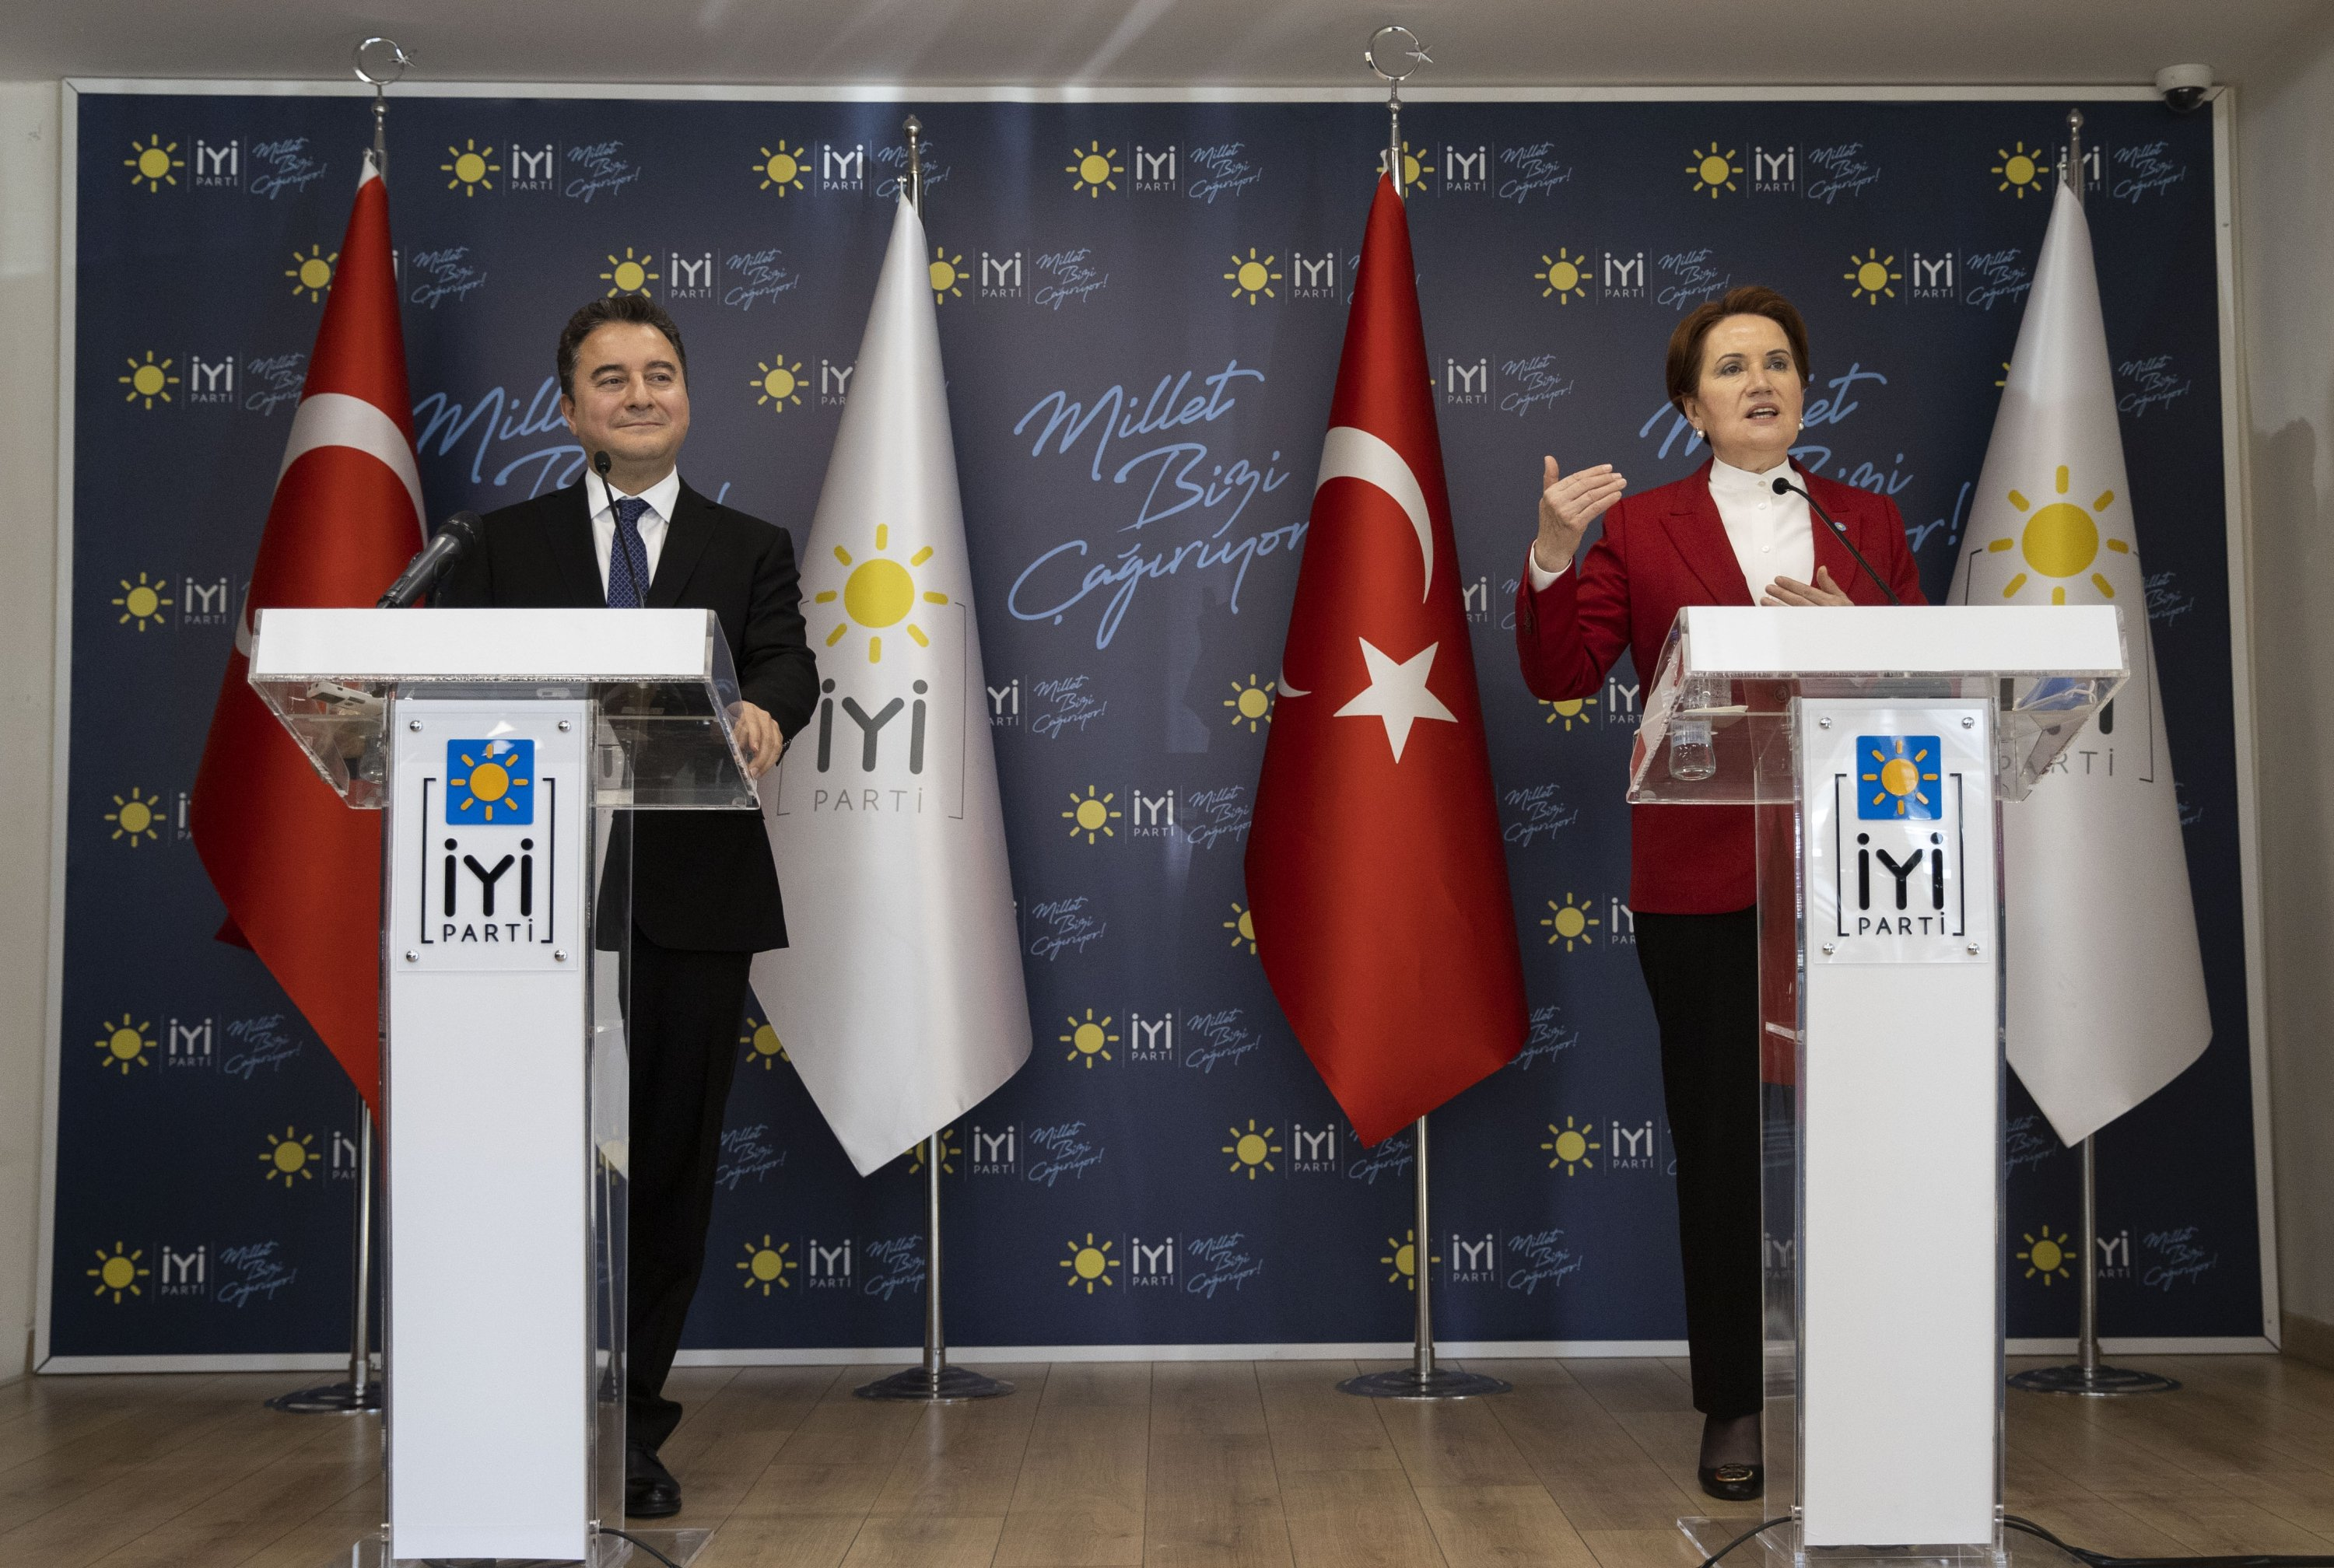 DEVA Chairman Ali Babacan and head of the IP Meral Akşener conduct a joint press conference following a meeting in Ankara, Turkey, Feb.4, 2021. (AA)